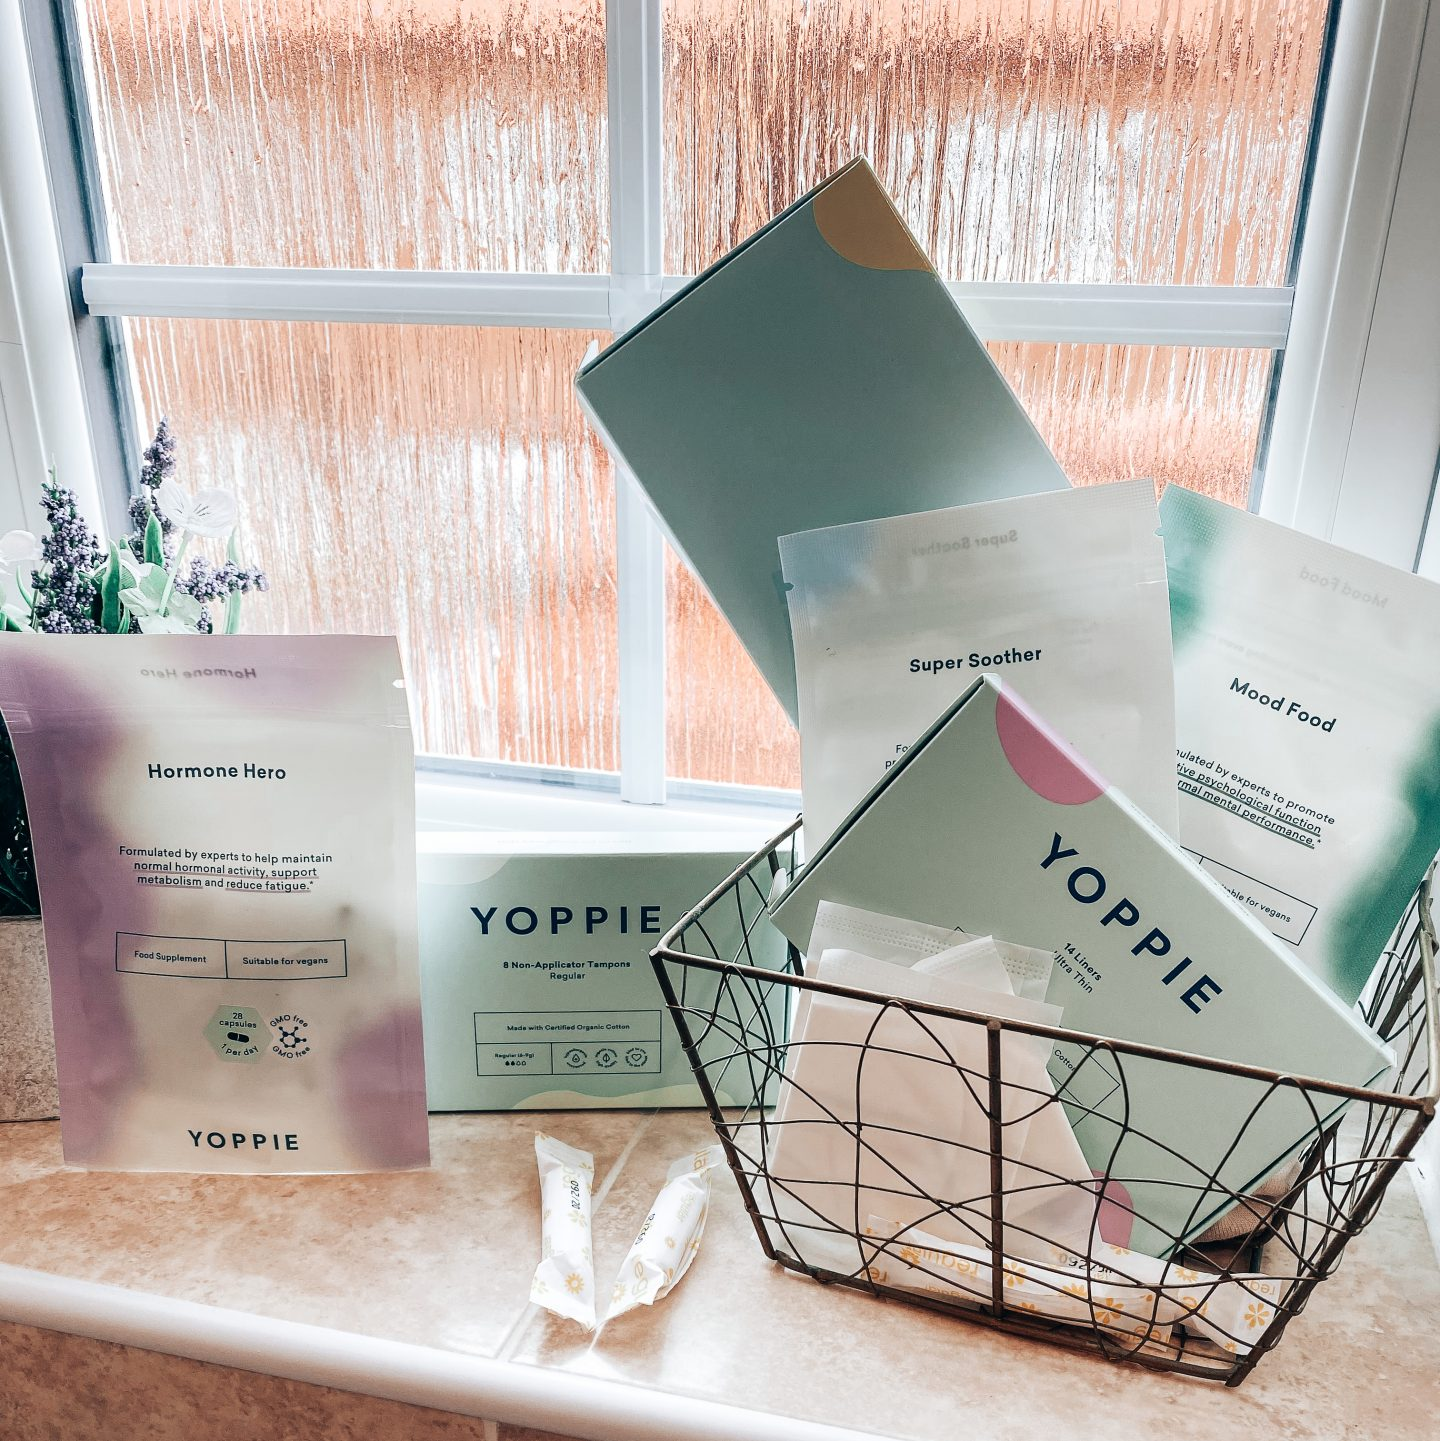 YOPPIE – personalised period products straight to your door